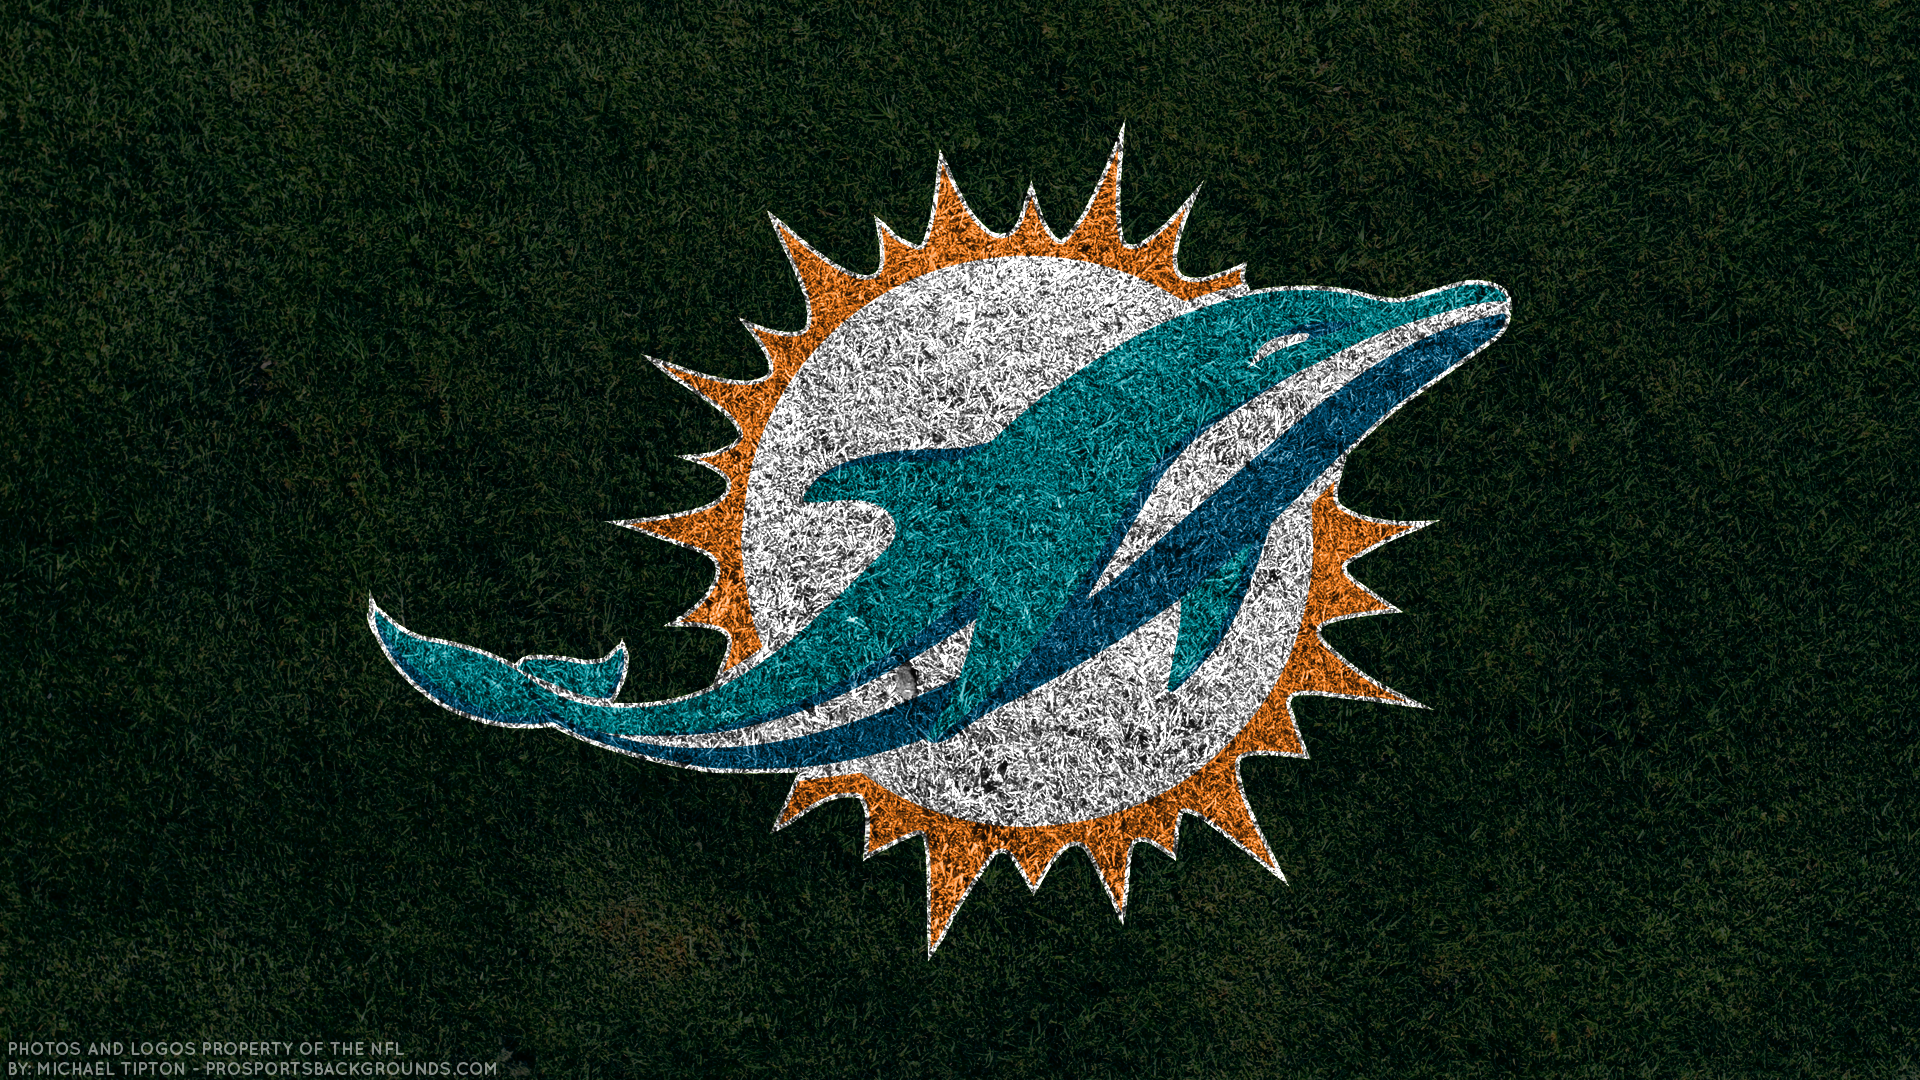 Download miami dolphins logo wallpaper gallery - Pink dolphin logo wallpaper ...